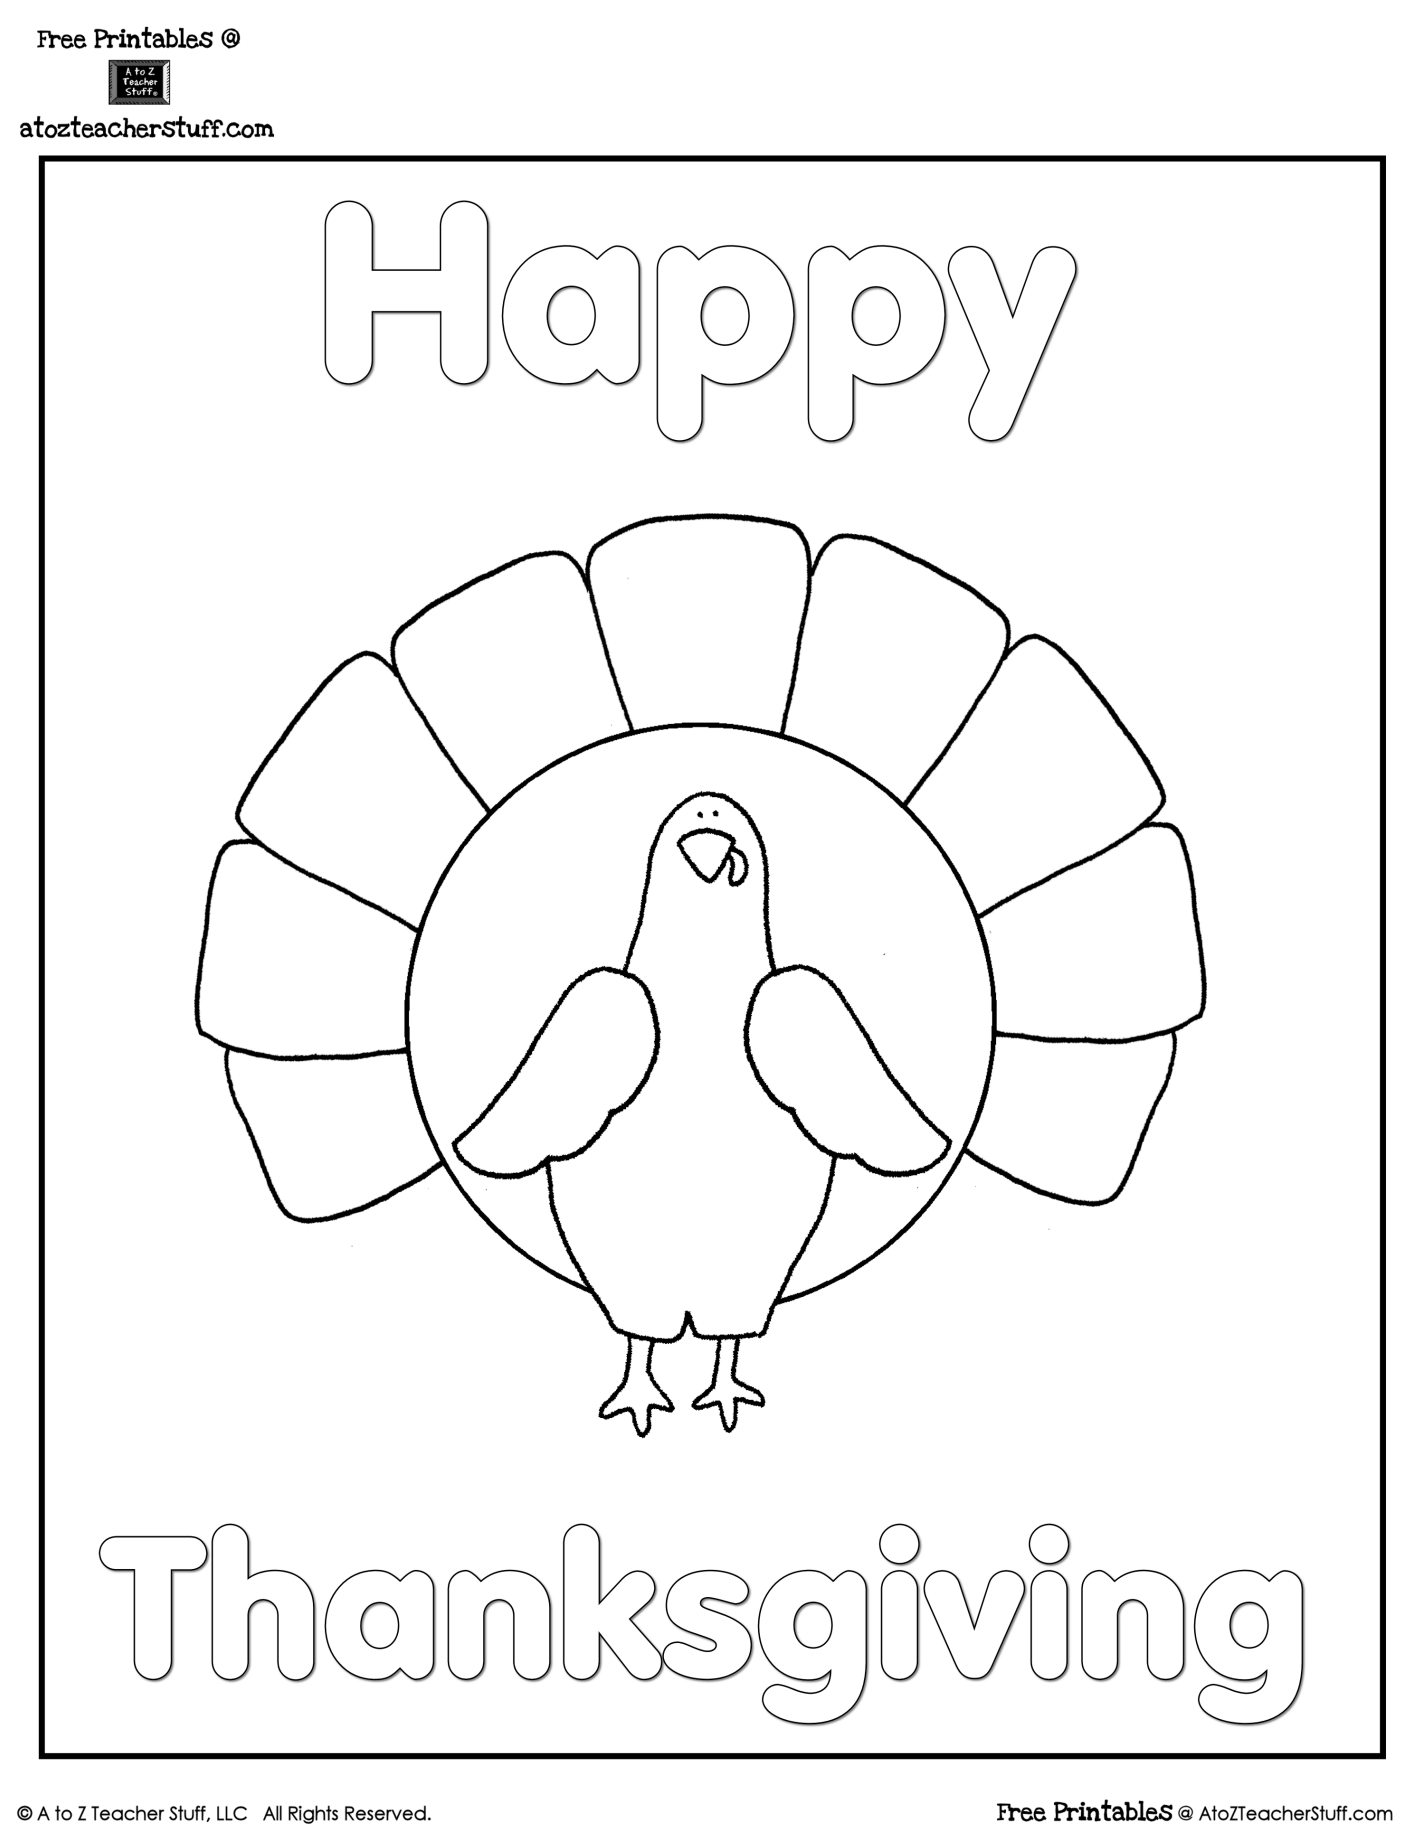 Gargantuan image intended for turkey coloring printable